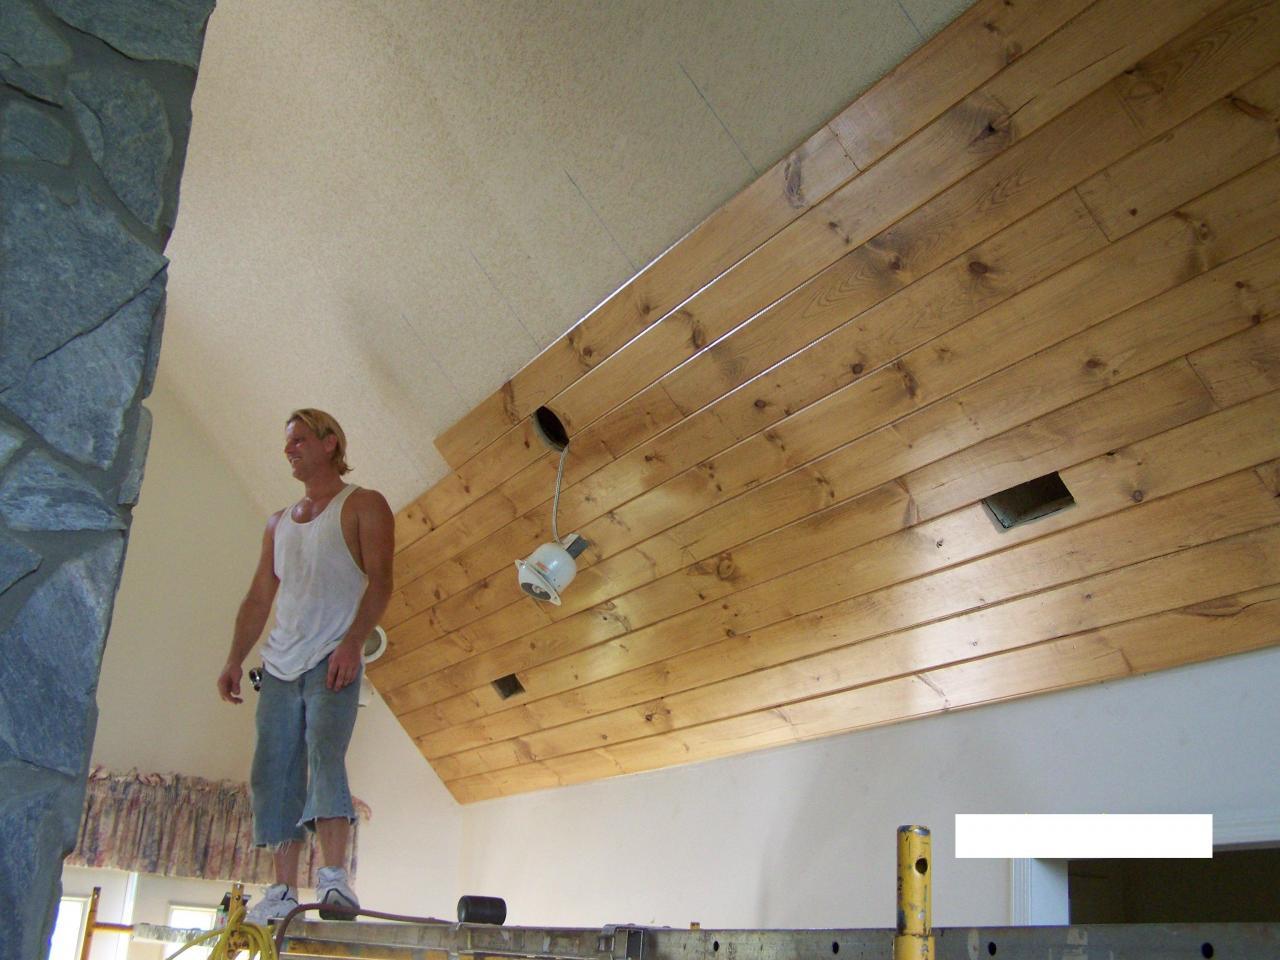 Tongue and groove ceiling plus wood plank ceiling plus knotty pine paneling plus tongue groove ceiling